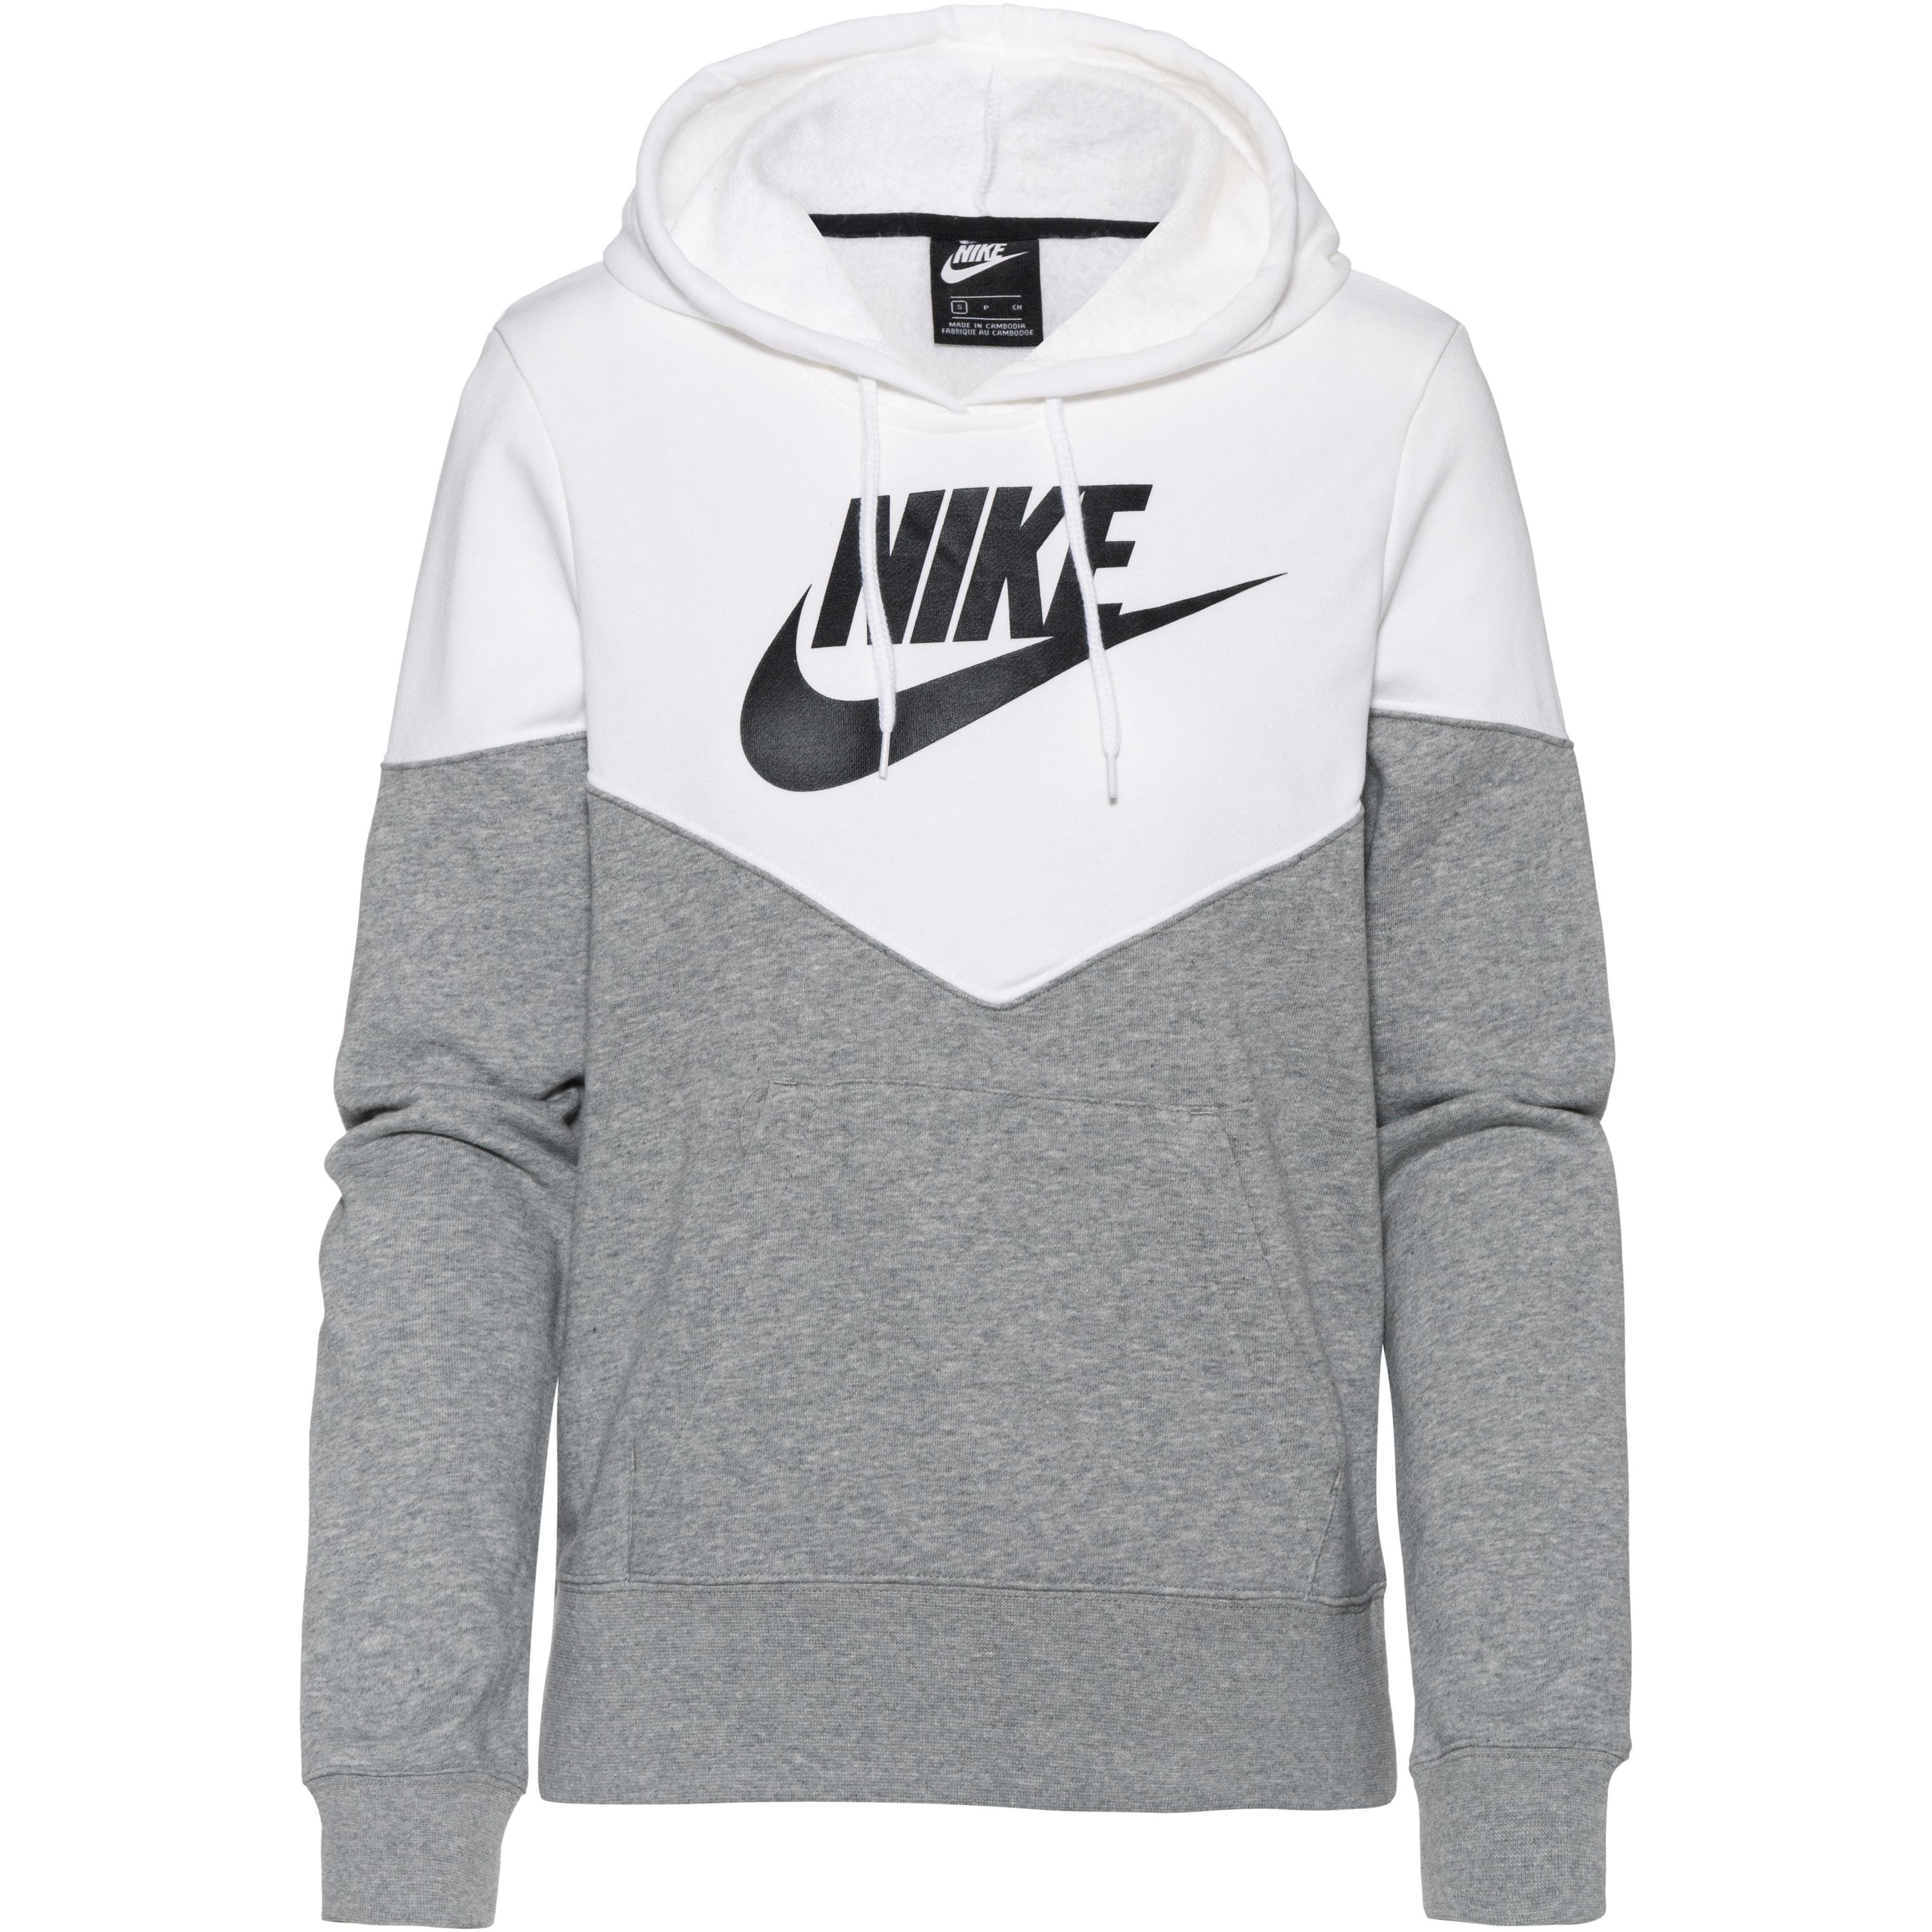 brand new popular stores hot products Nike Damen Hoodies Online Shops | Nike im SALE